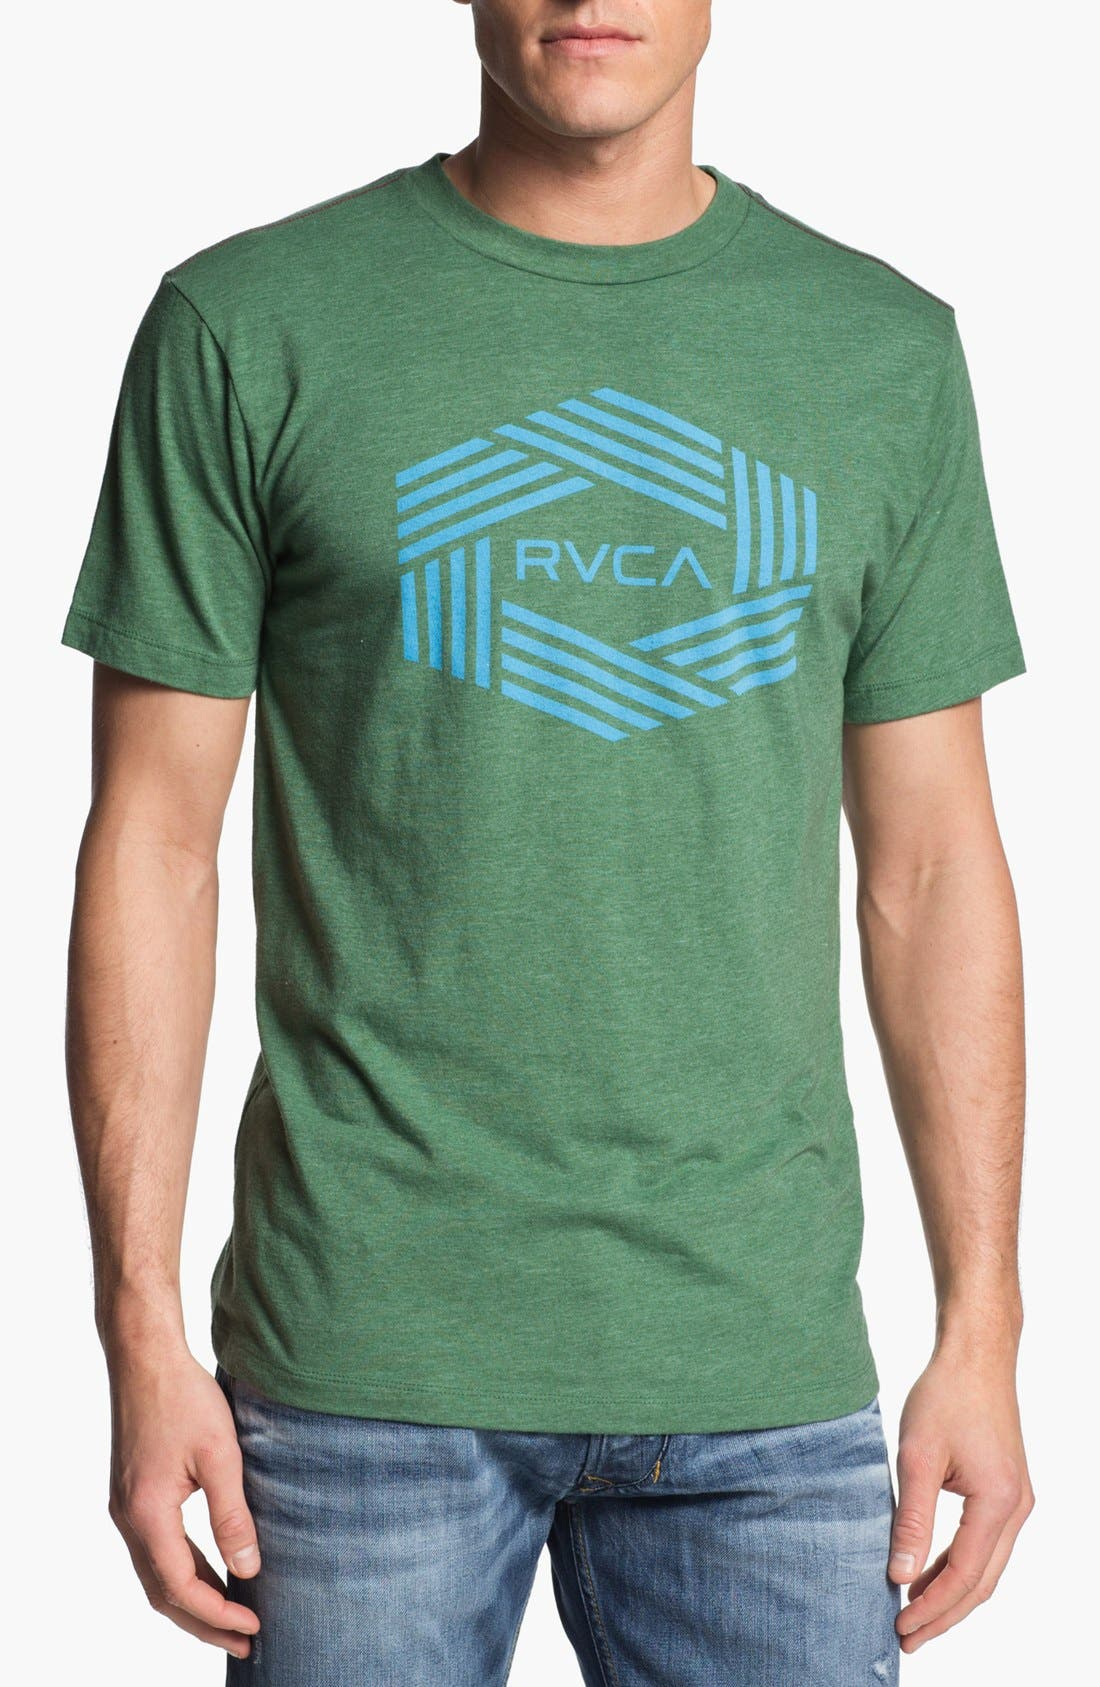 Alternate Image 1 Selected - RVCA 'Bar Hex' Graphic T-Shirt